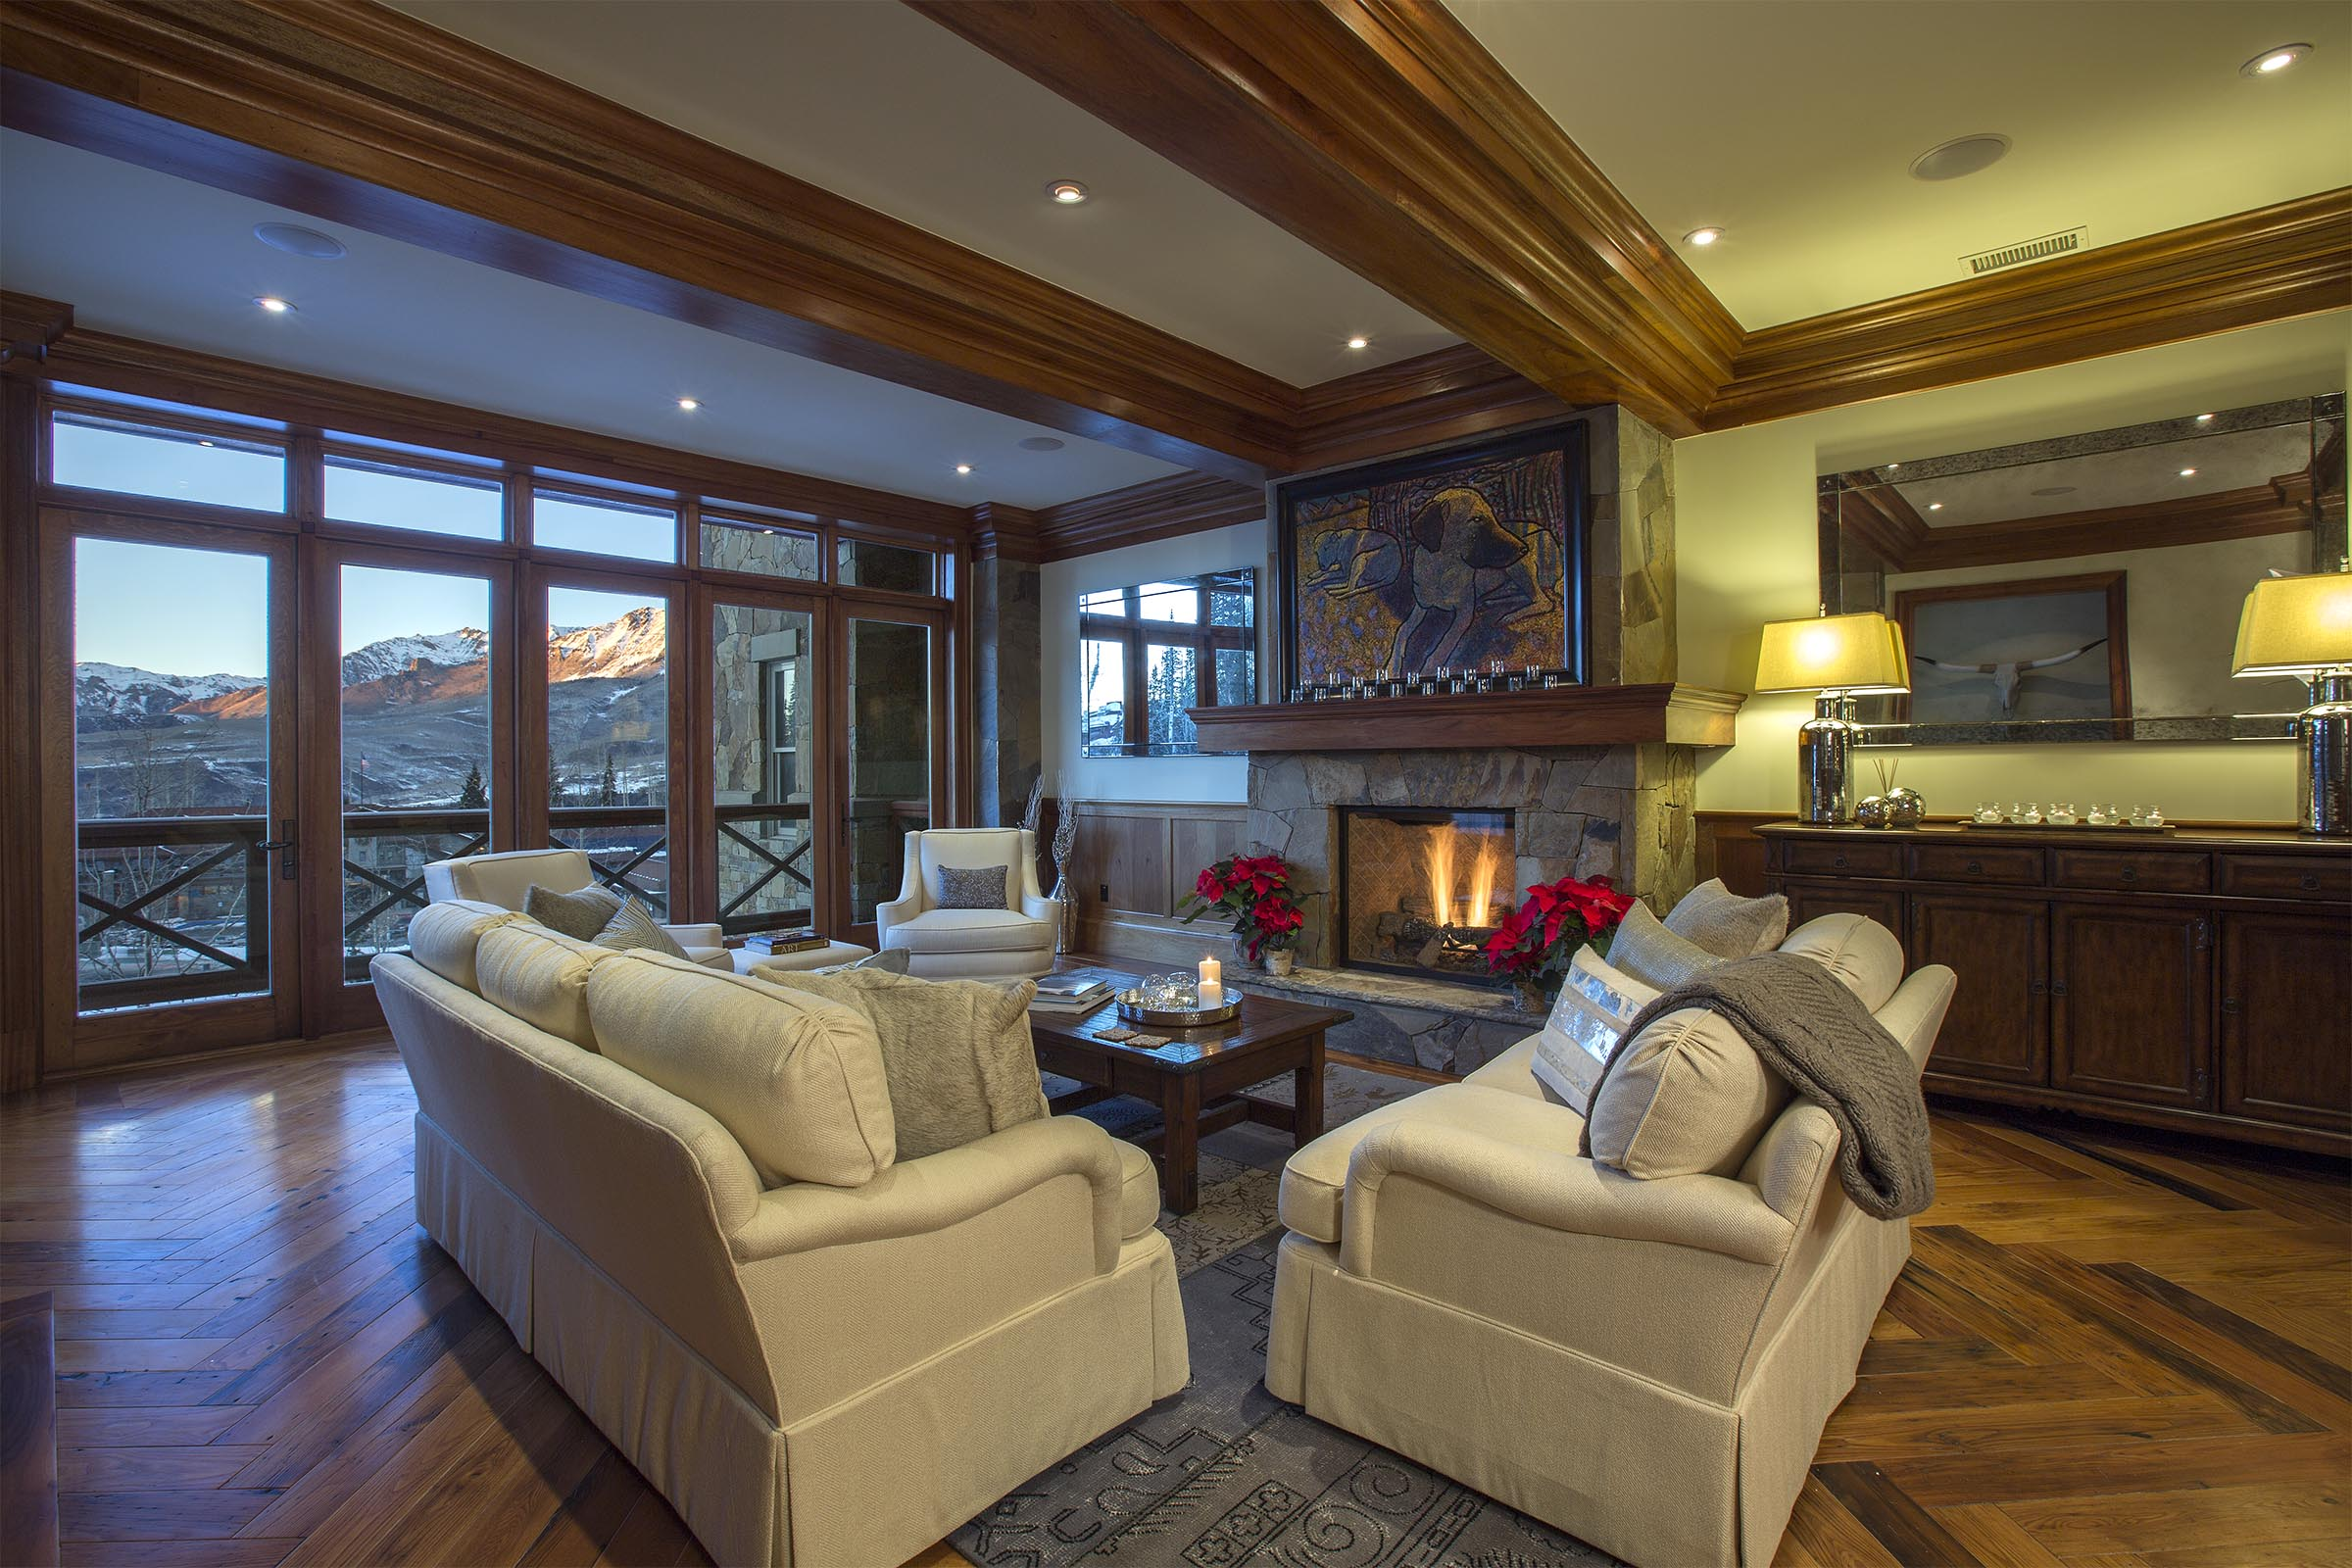 Condominium for Sale at Lorain III, Unit 5 111 San Joaquin Road Lorian III, Unit 5 Mountain Village, Telluride, Colorado 81435 United States